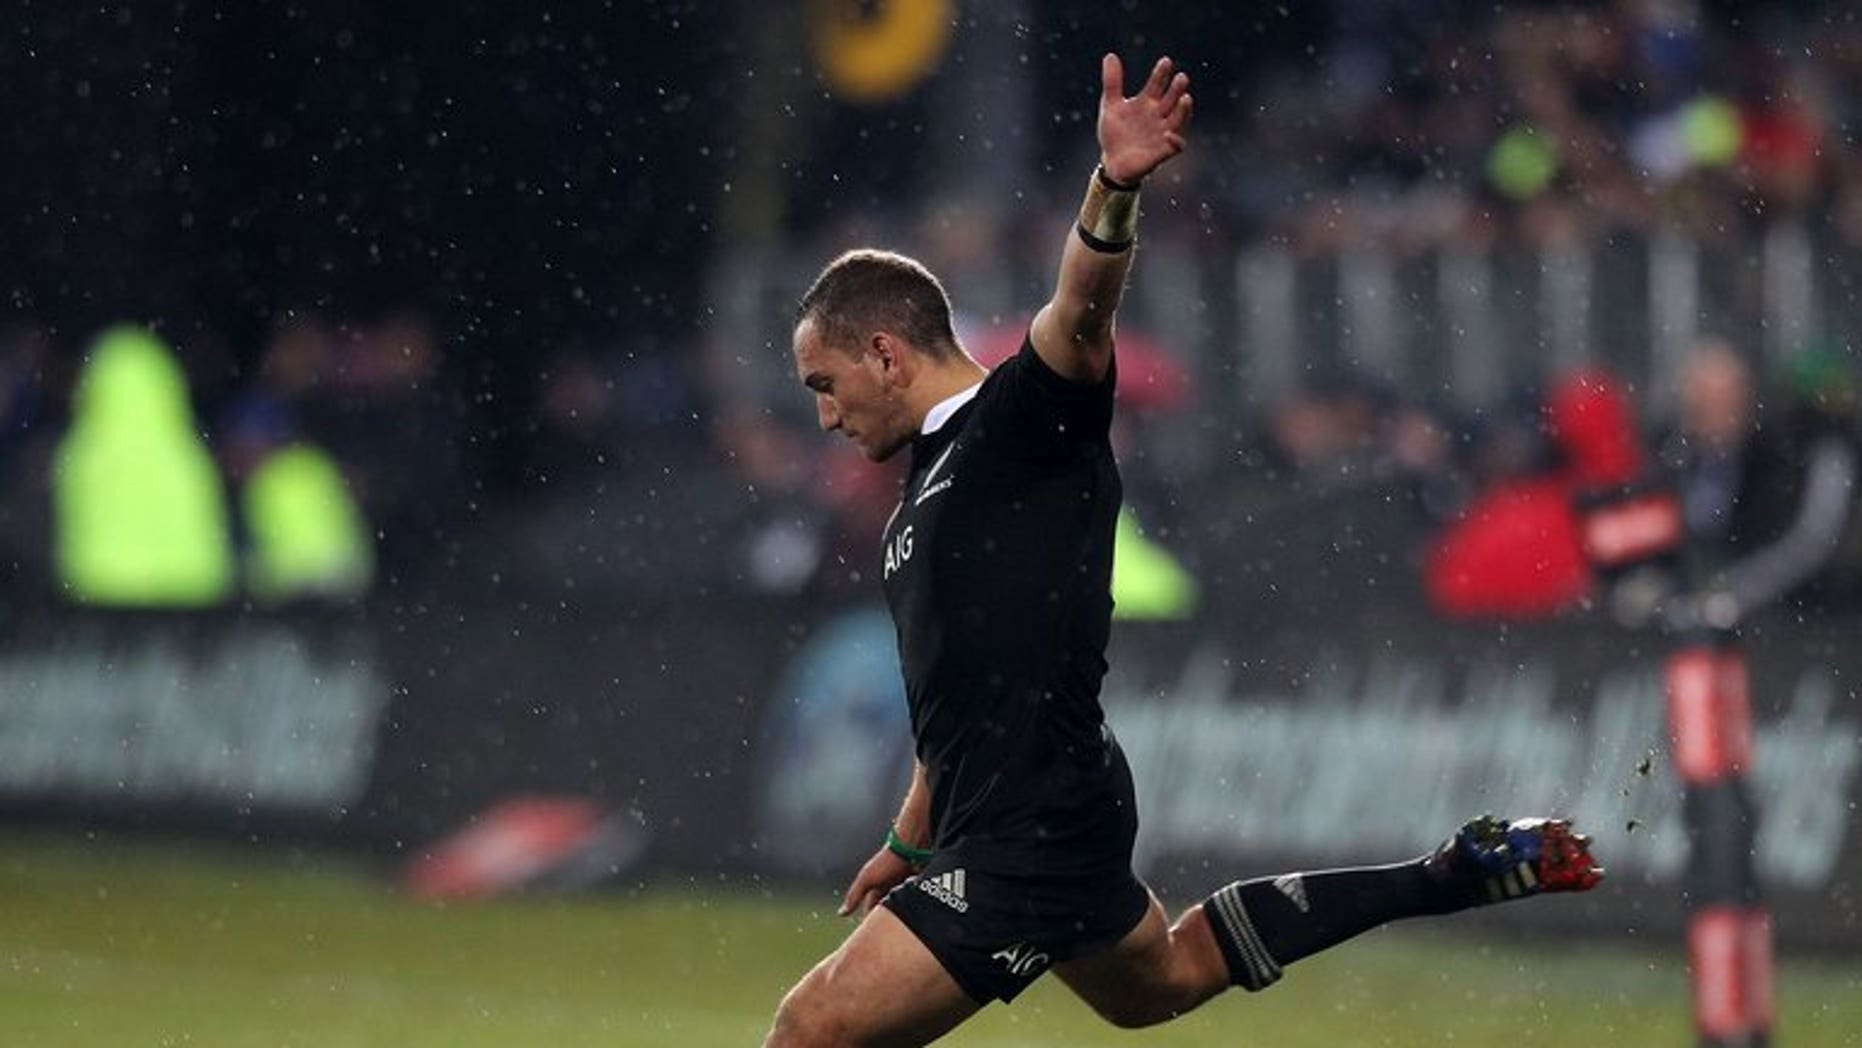 All Black Aaron Cruden of New Zealand, pictured kicking a penalty on June 15, 2013, will miss Saturday's clash with Australia. Also out are Beauden Barrett and Luke Romano.